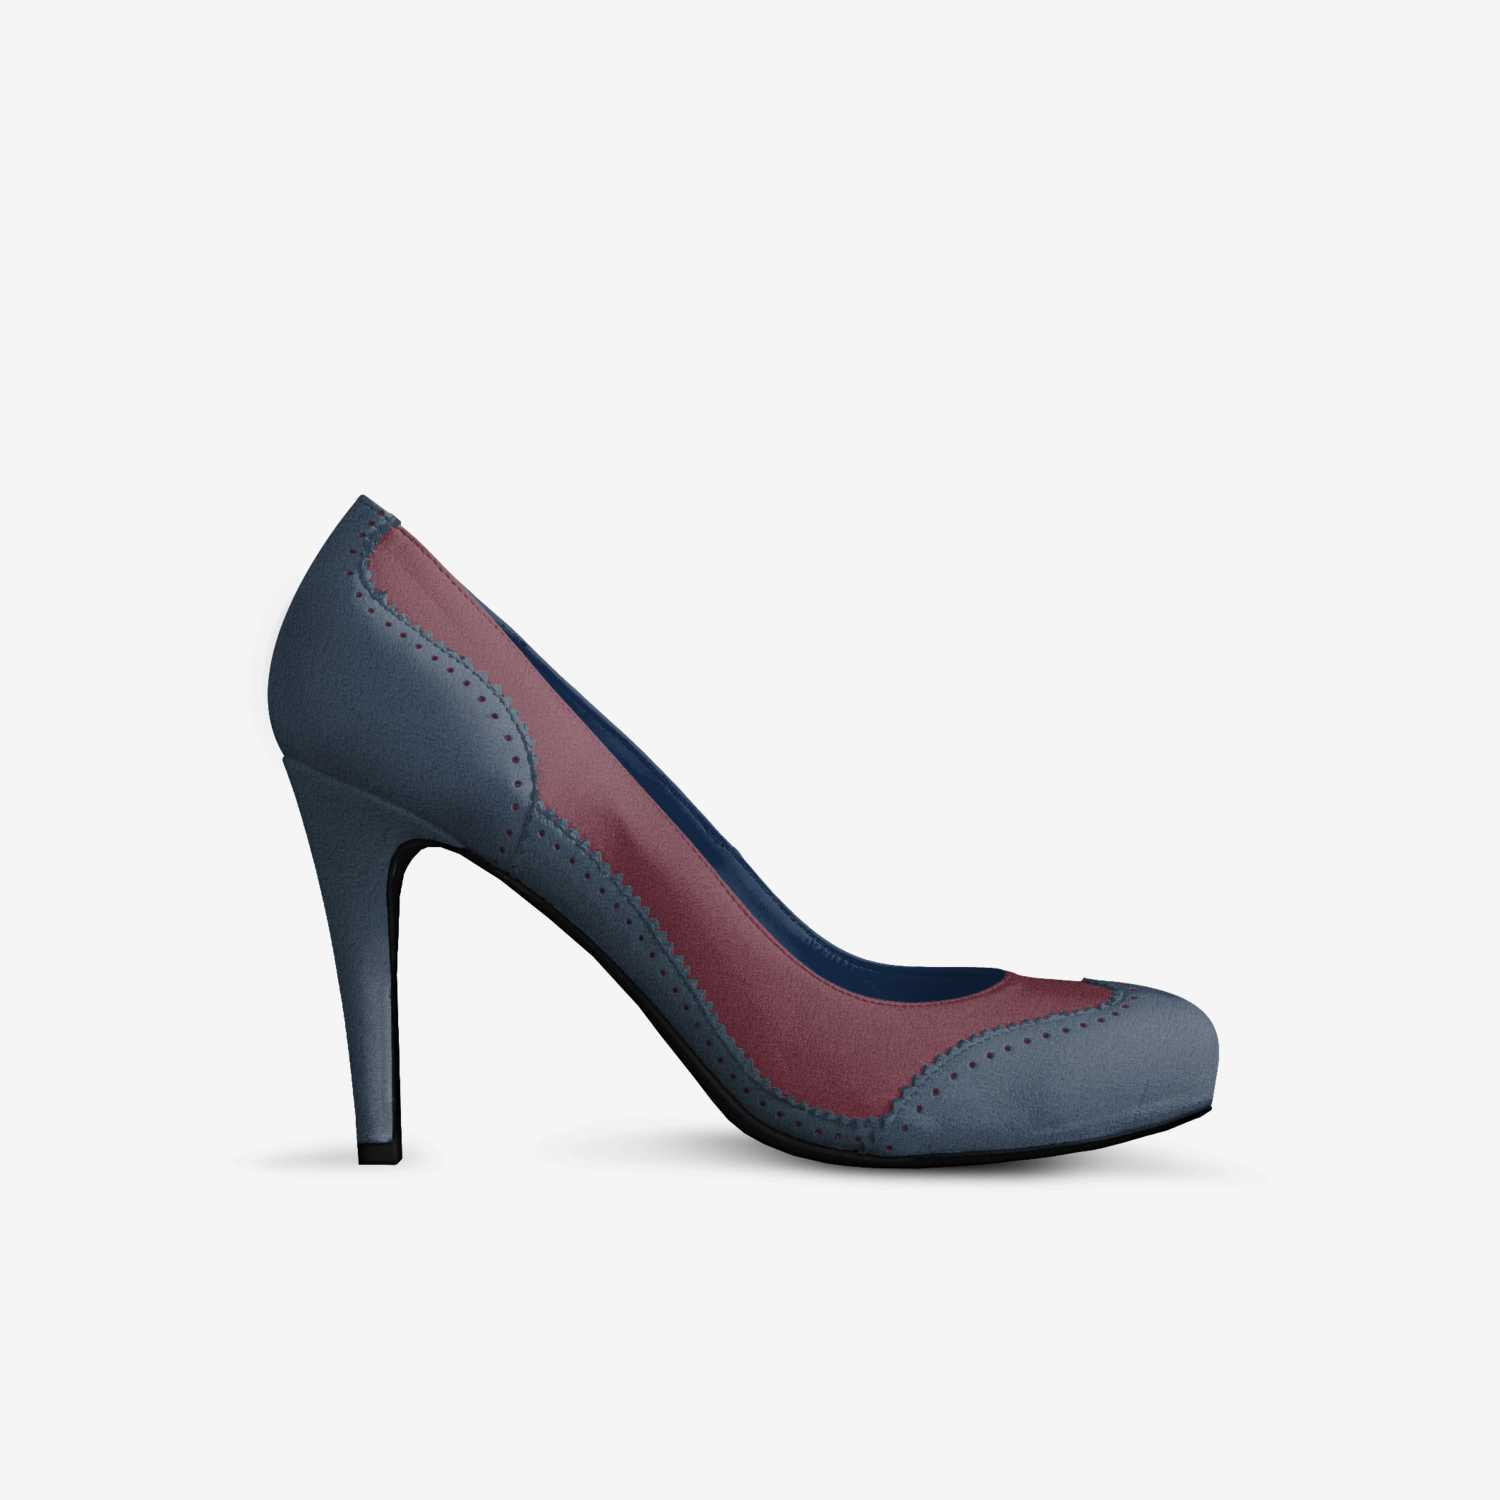 Dee by Diana custom made in Italy shoes by Diana Soukar   Side view